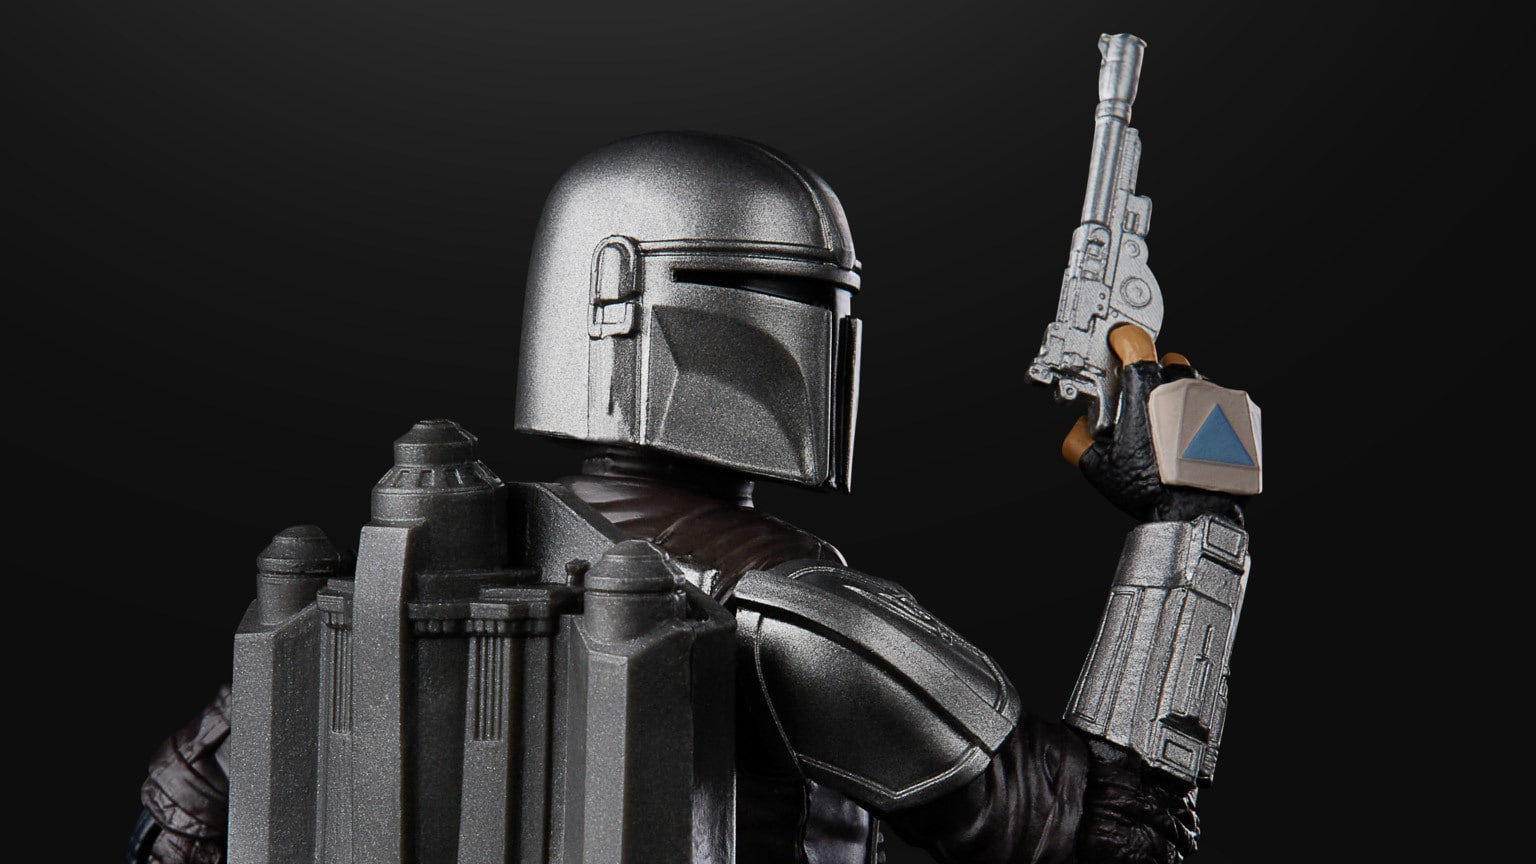 7 New Hasbro Star Wars Figures Revealed Today